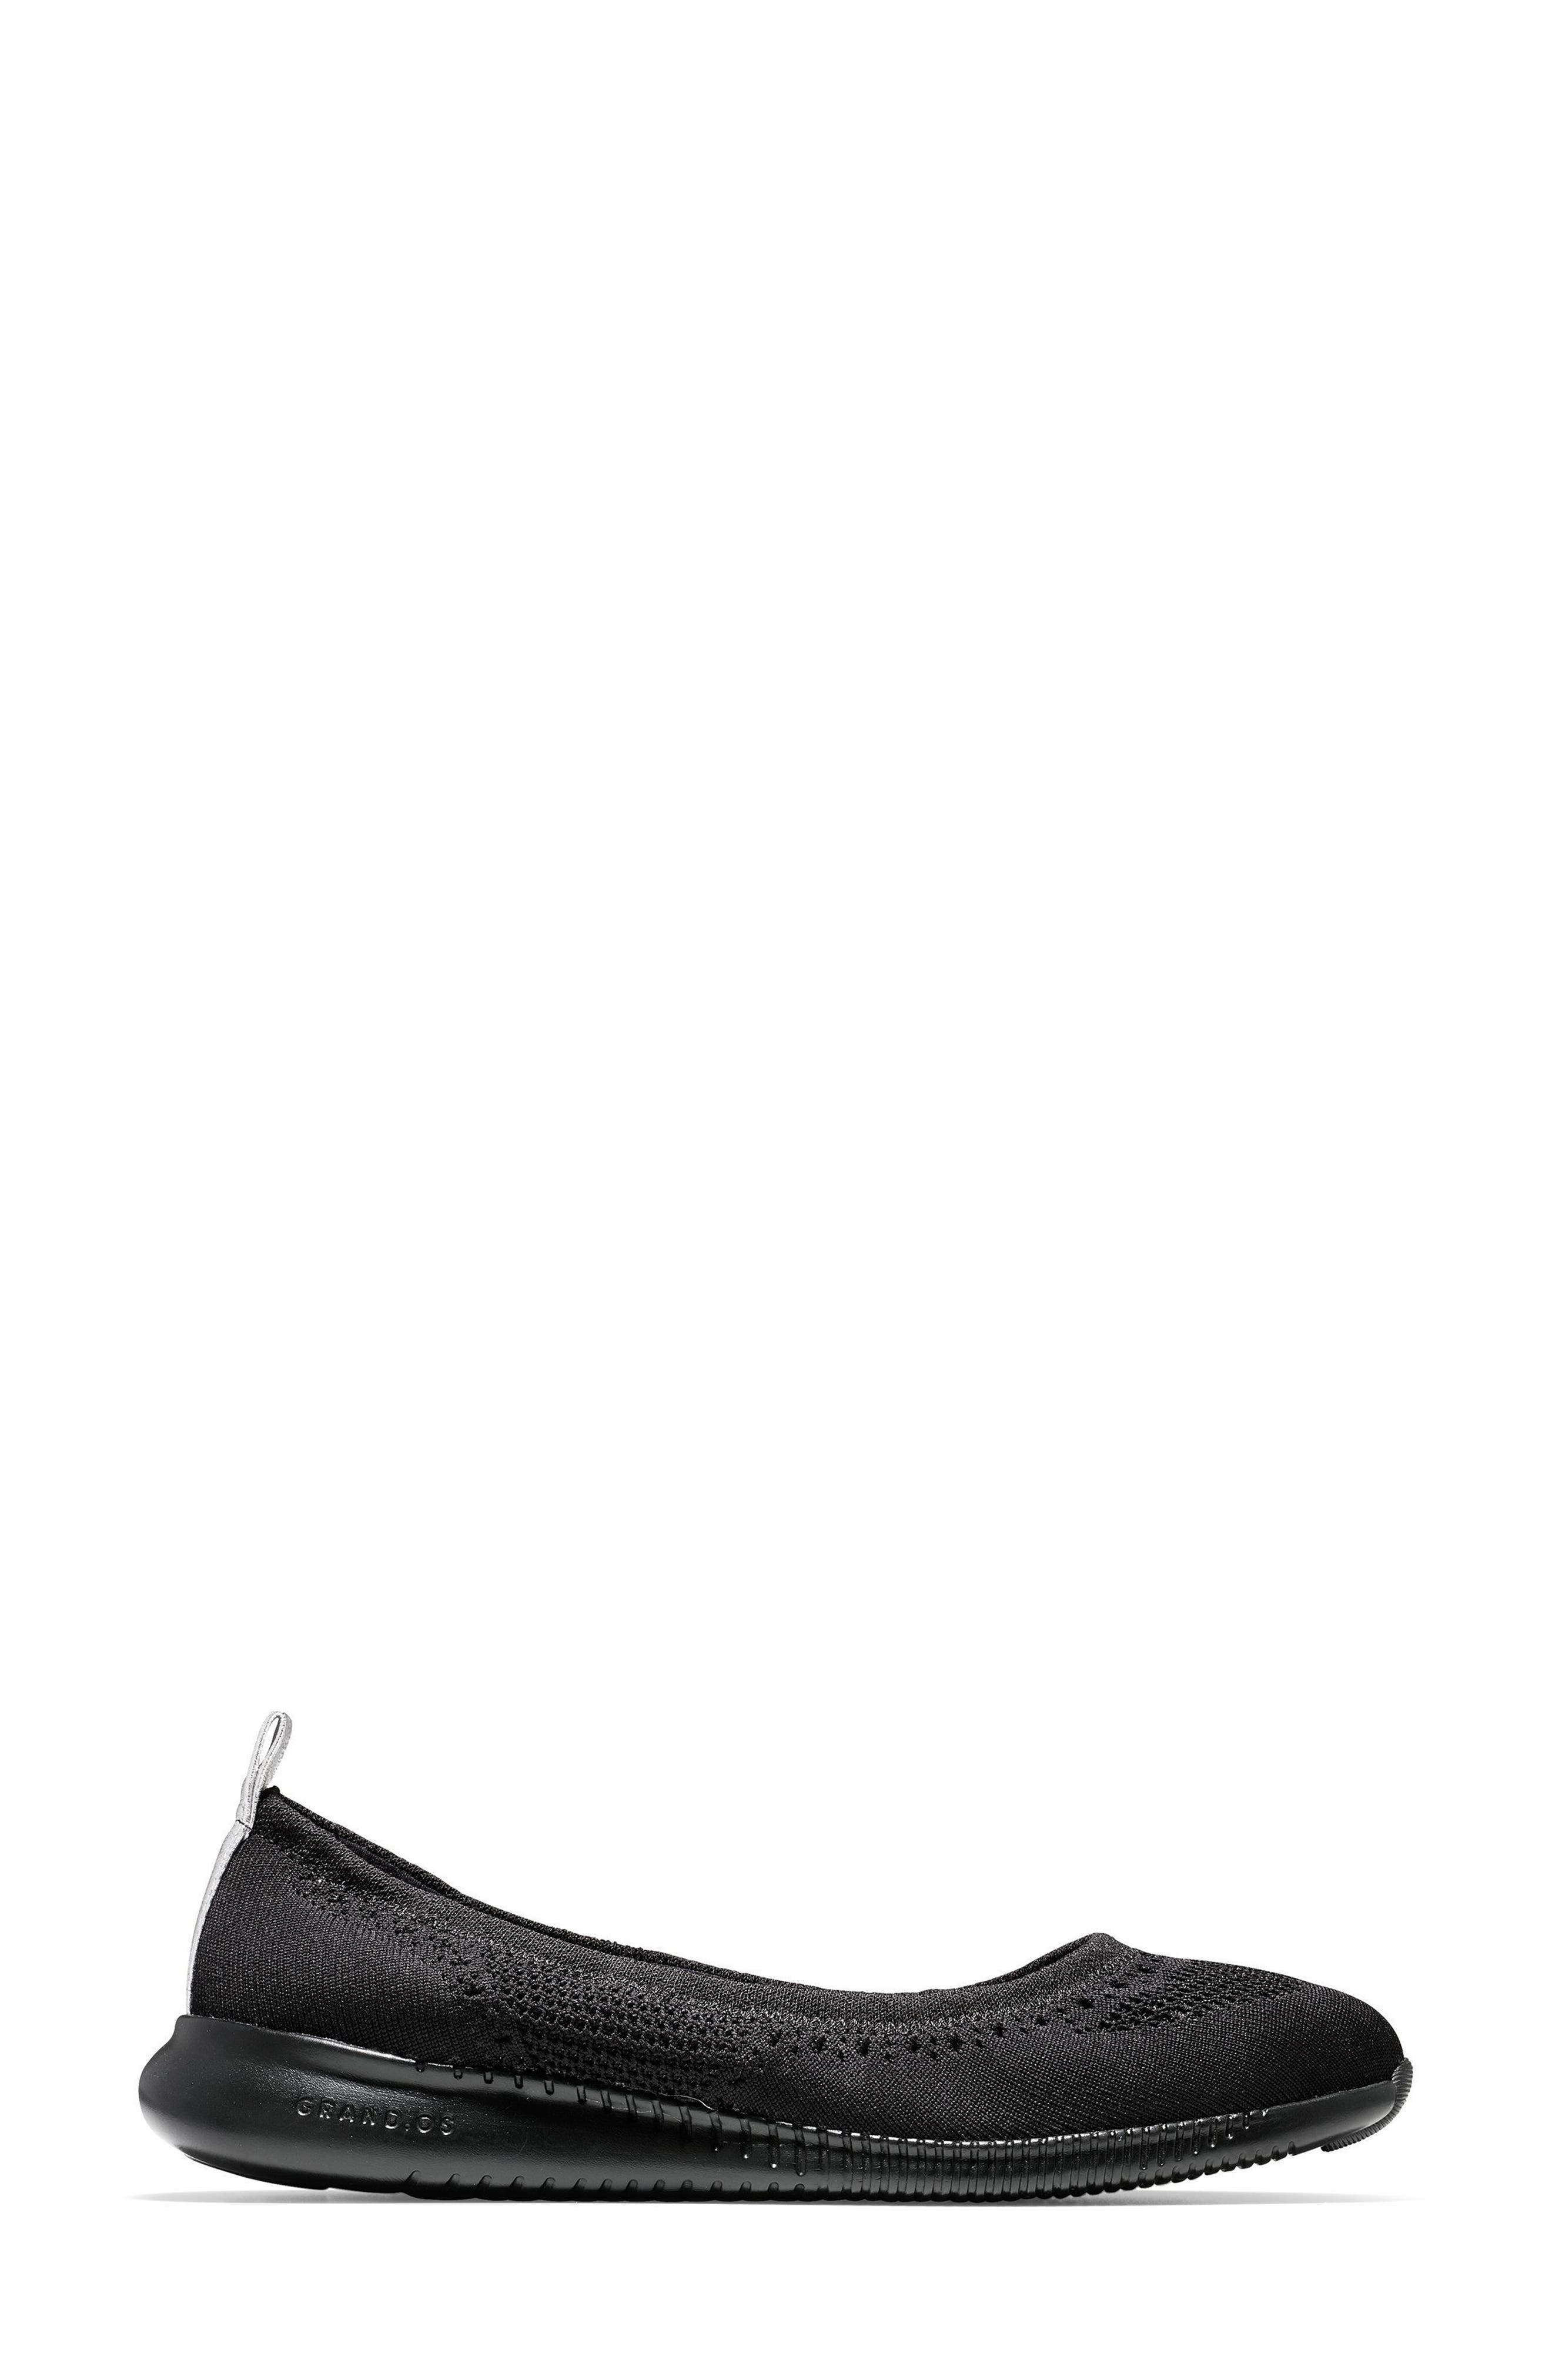 COLE HAAN, 2.ZERØGRAND Stitchlite Ballet Flat, Alternate thumbnail 3, color, BLACK FABRIC